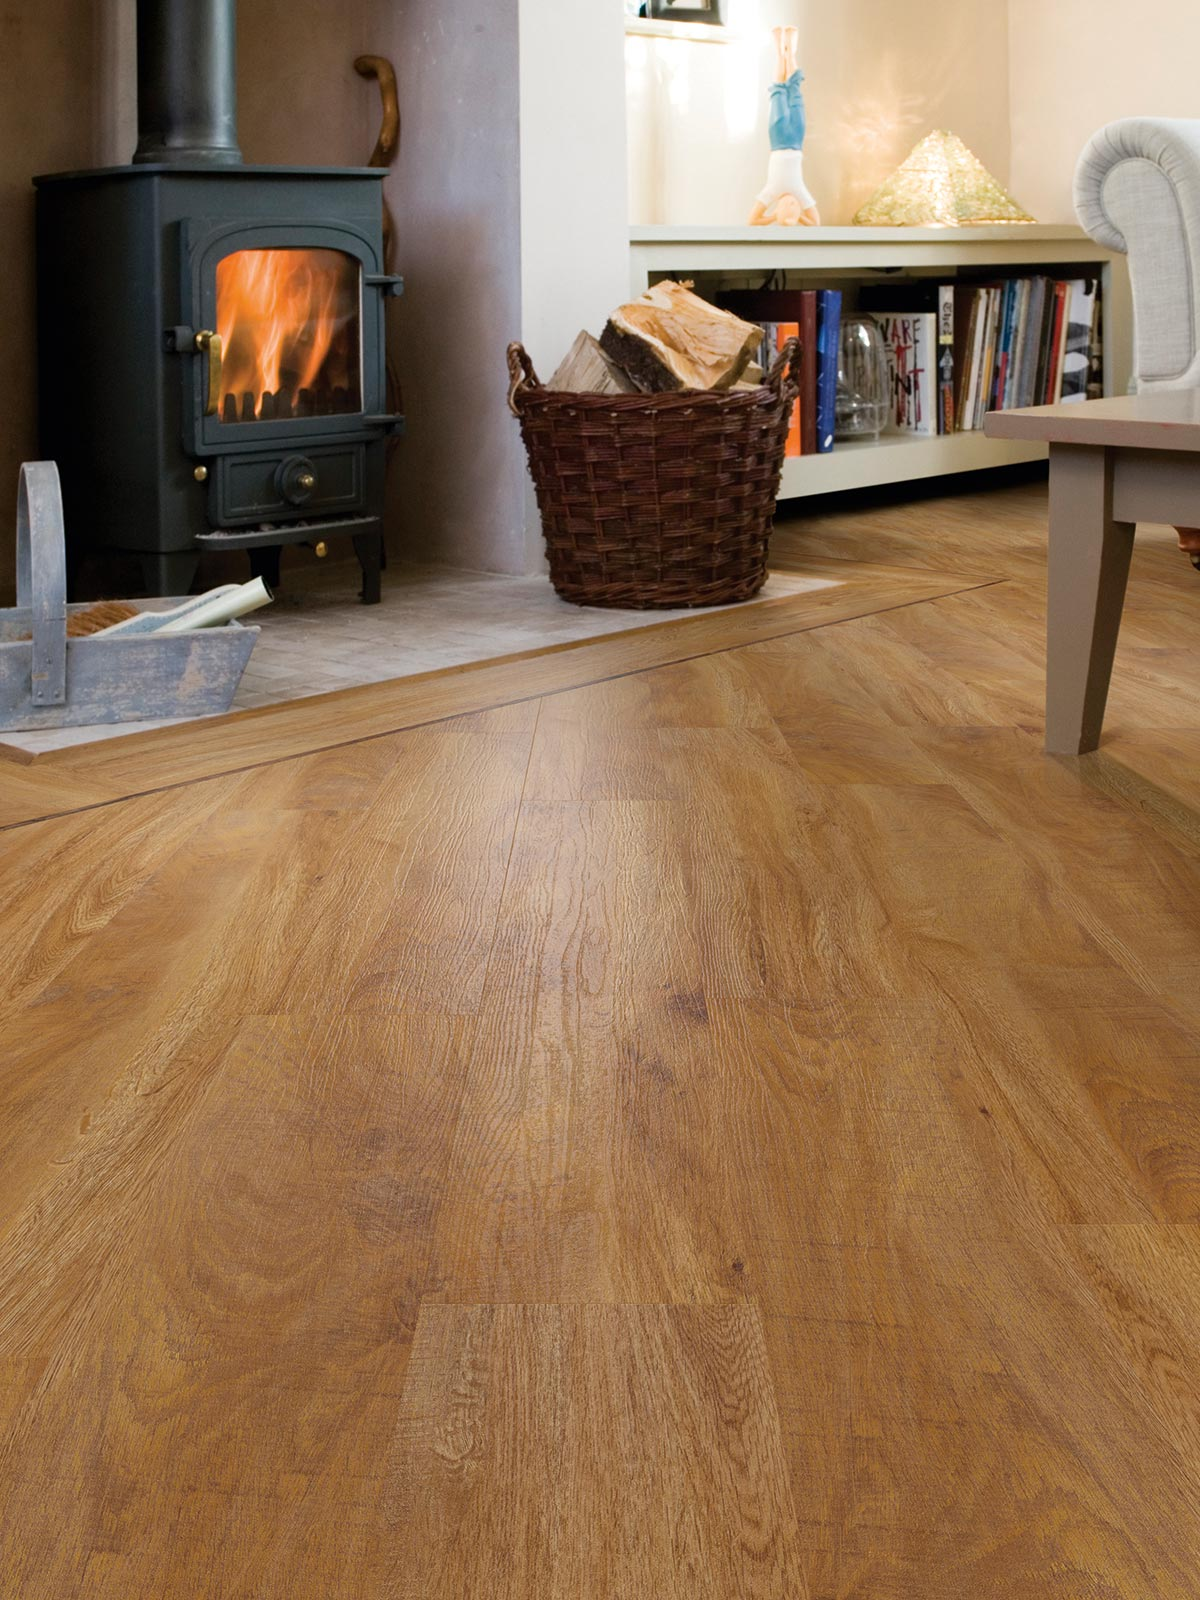 Warm Oak Effect Luxury Vinyl Flooring From J2